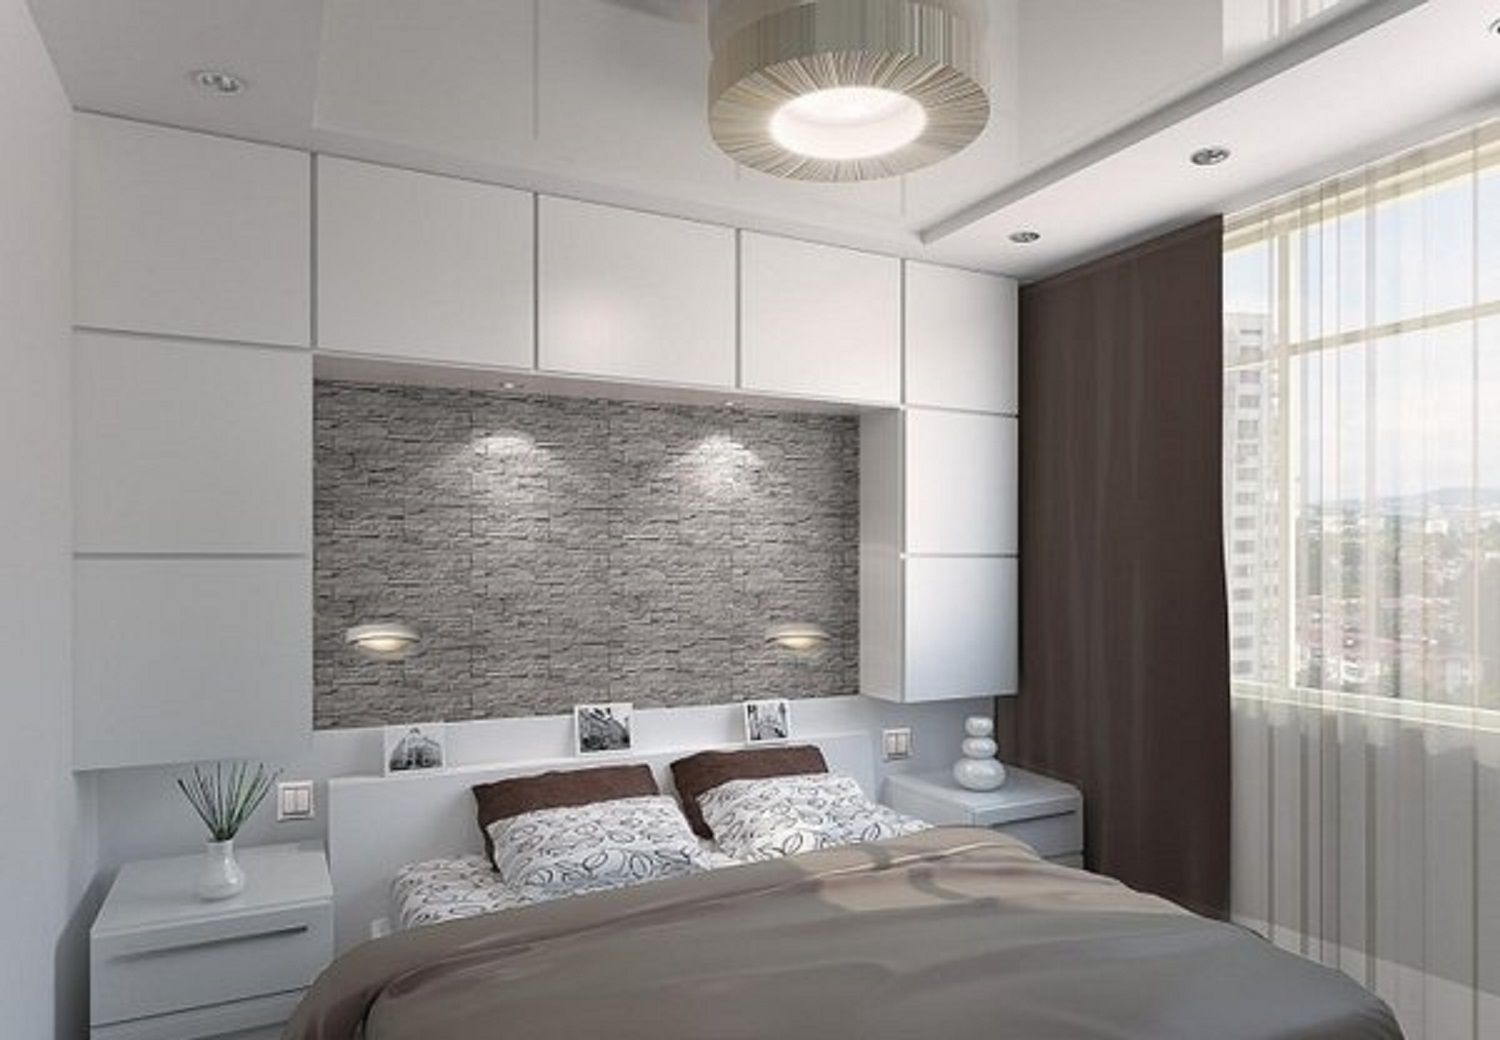 25 Tips And Photos For Decorating A Modern Master Bedroom throughout Modern Bedrooms Design